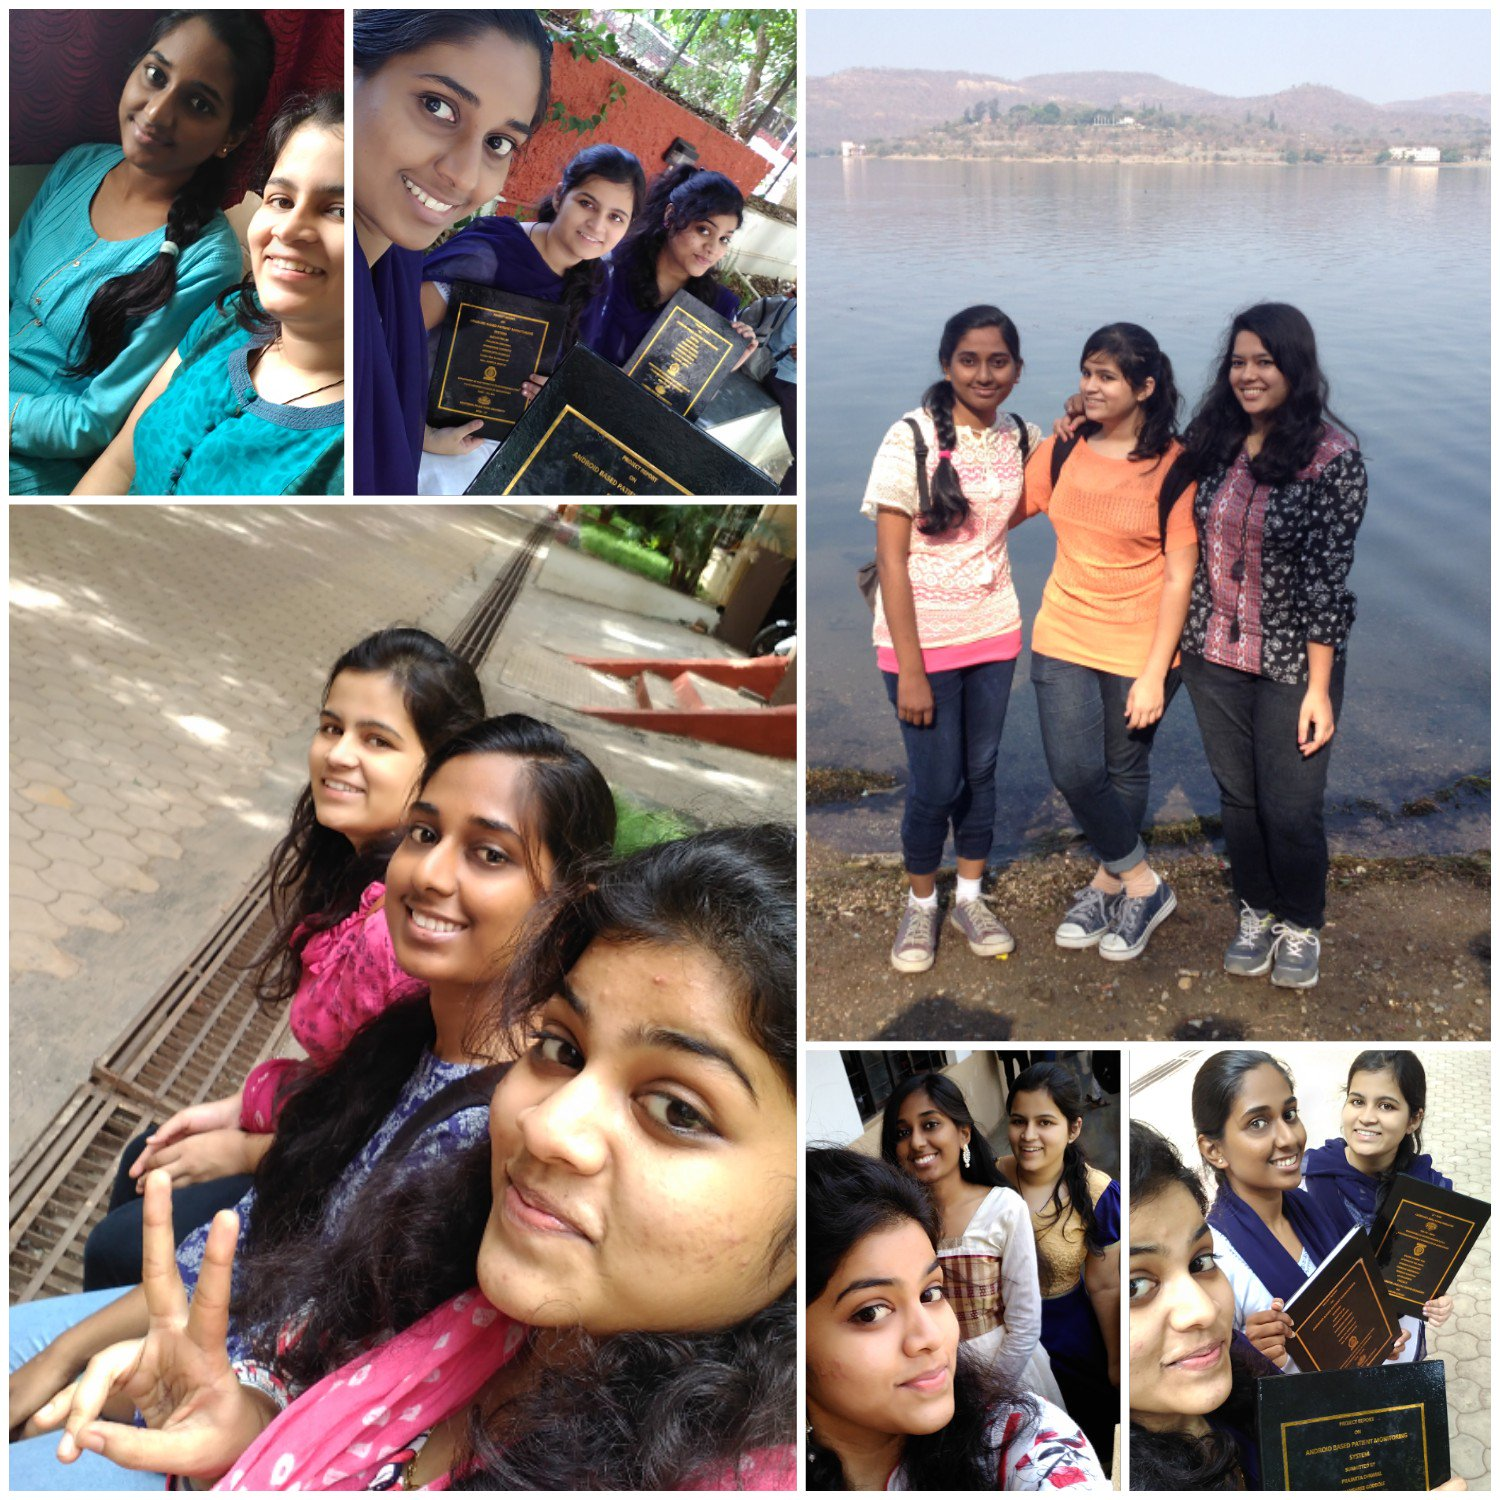 Harry Potter made me believe that grp of three frnd can change d world.. Happy bday miss julio